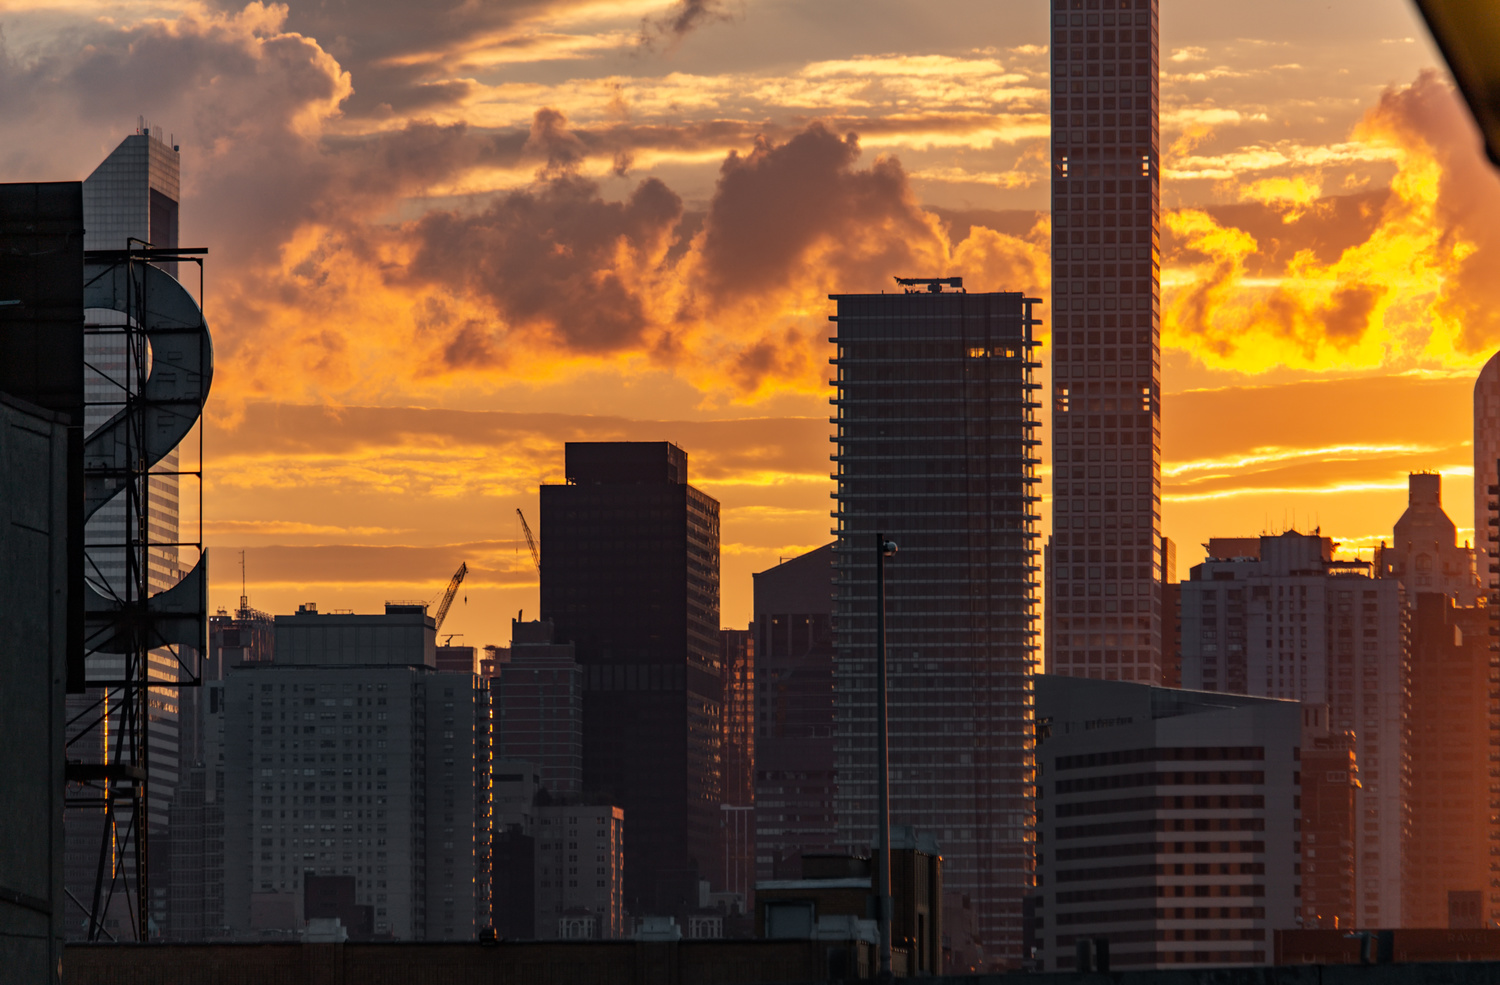 Burning sky in NYC by Luca Campioni